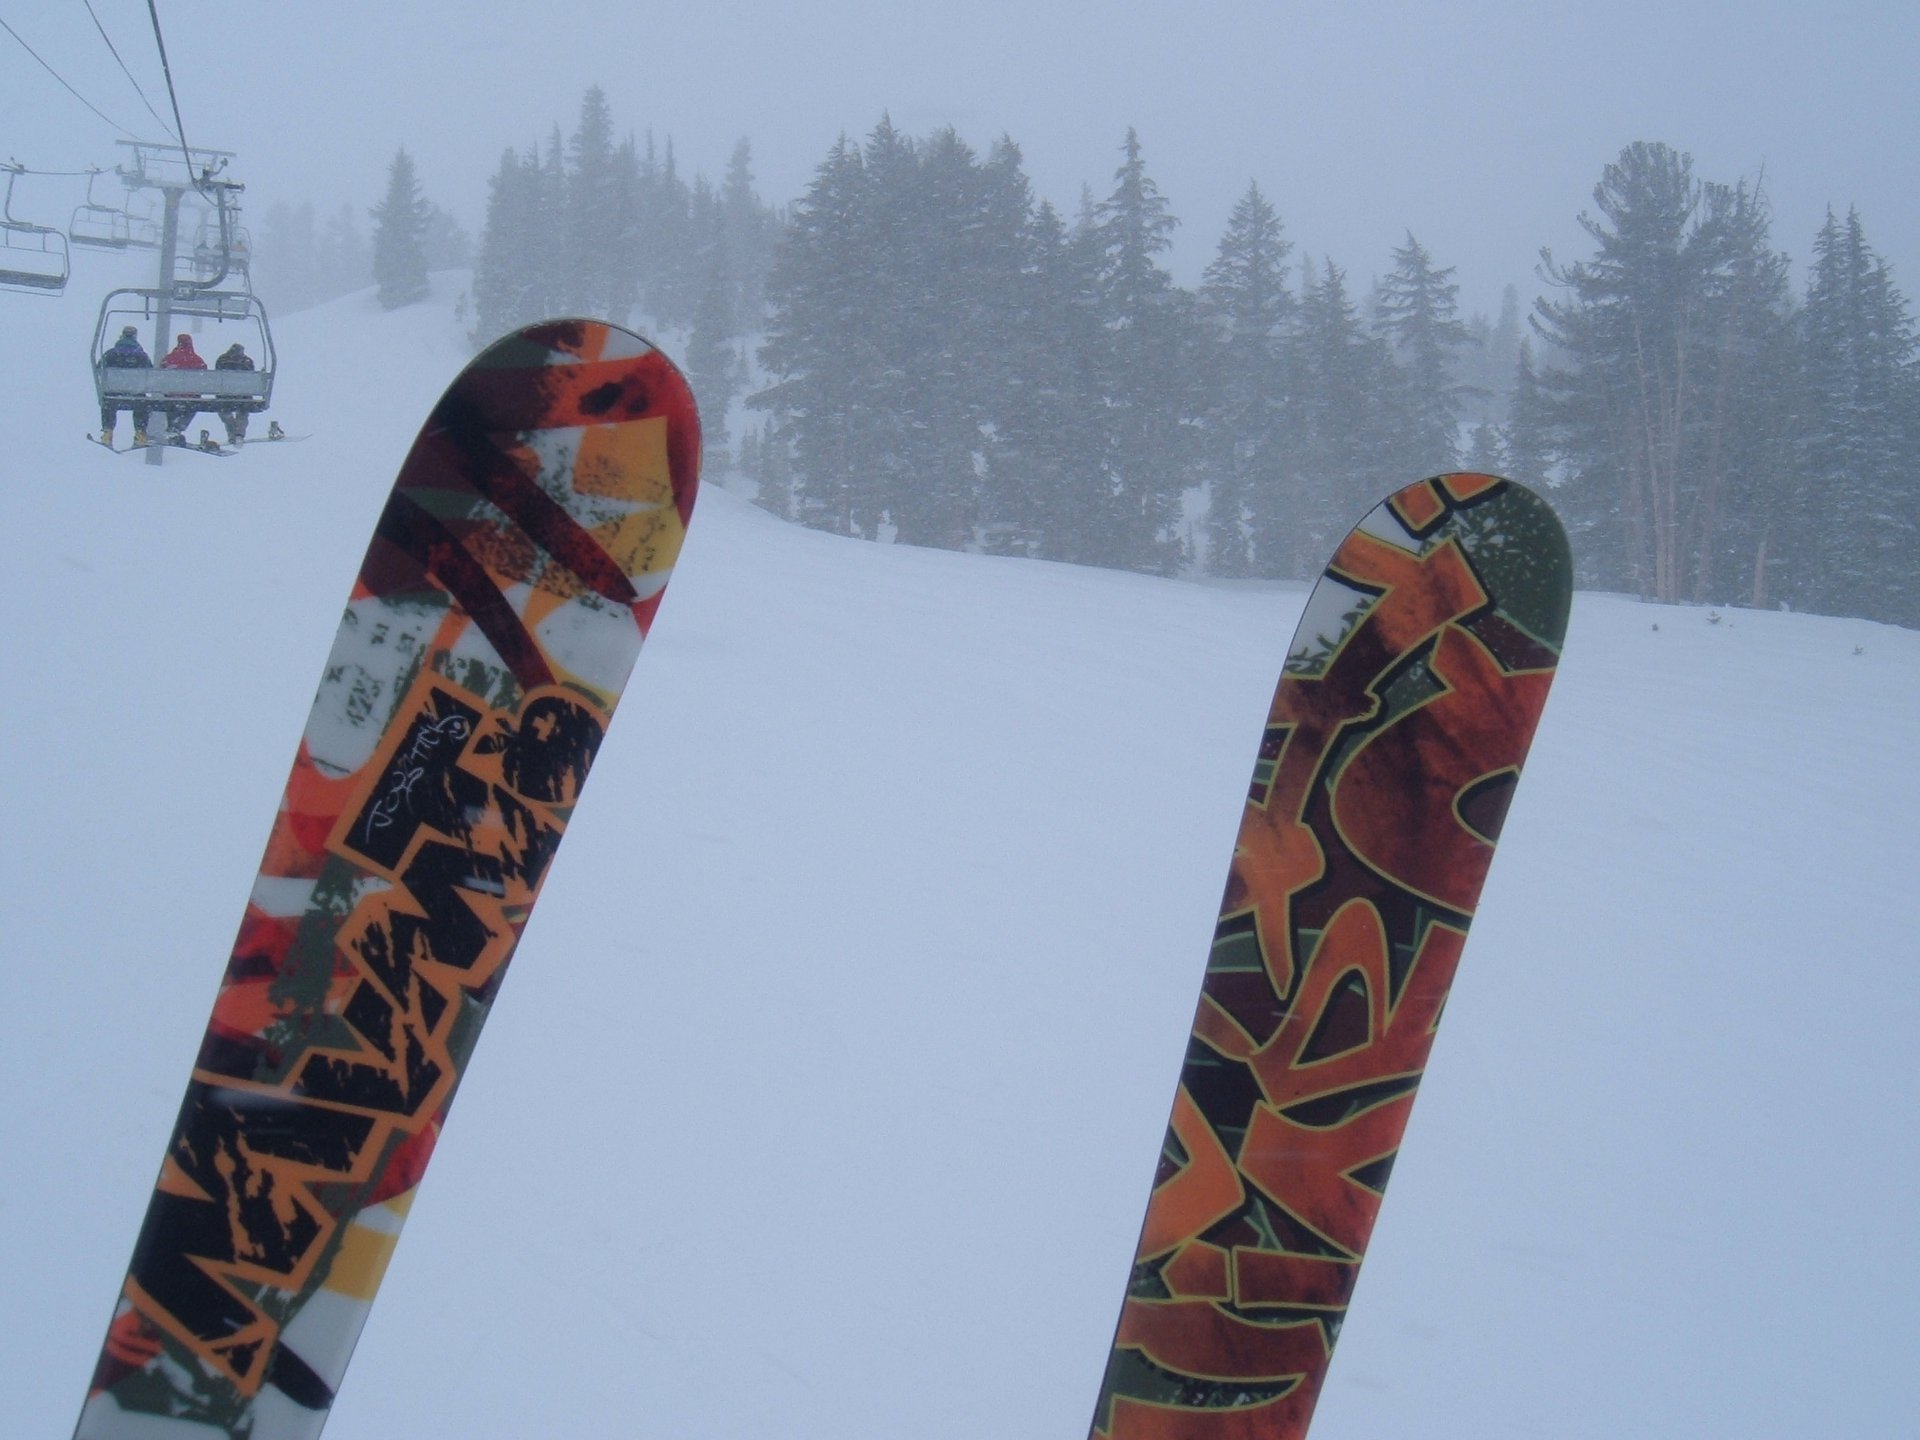 Riding up Chair 2